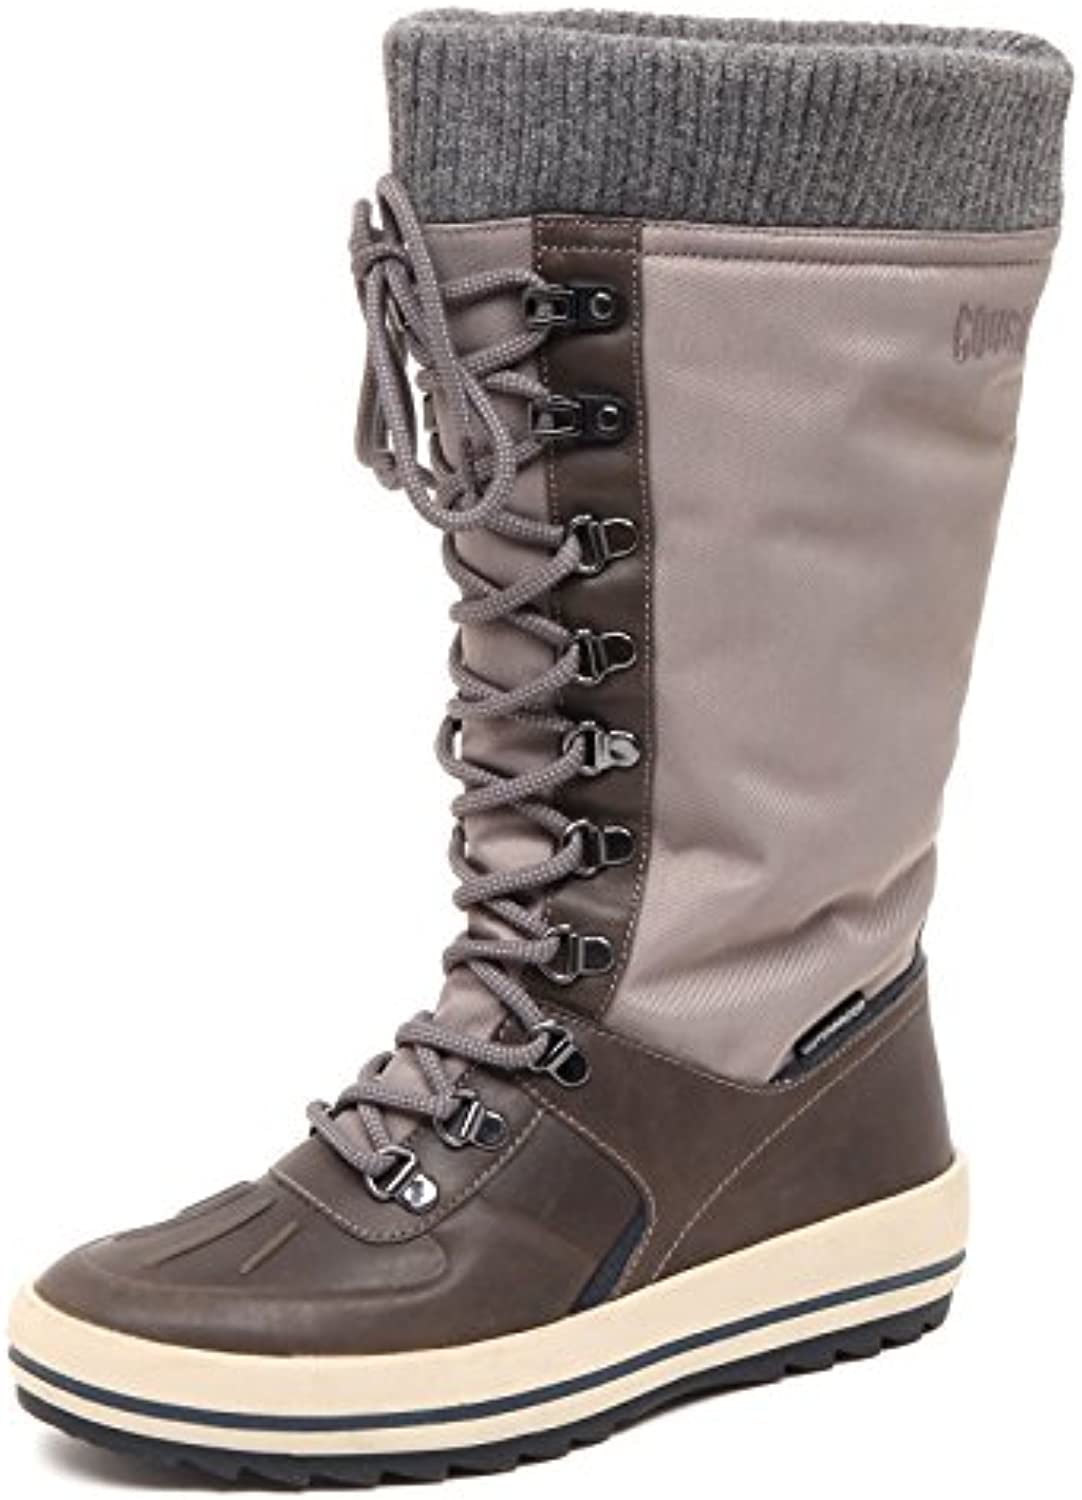 Cougar D8582 (Without (Without (Without Box) Stivale Donna Tissue Vancouver Marronee Taupe avvio Woman | Ufficiale  | Uomo/Donna Scarpa  931351